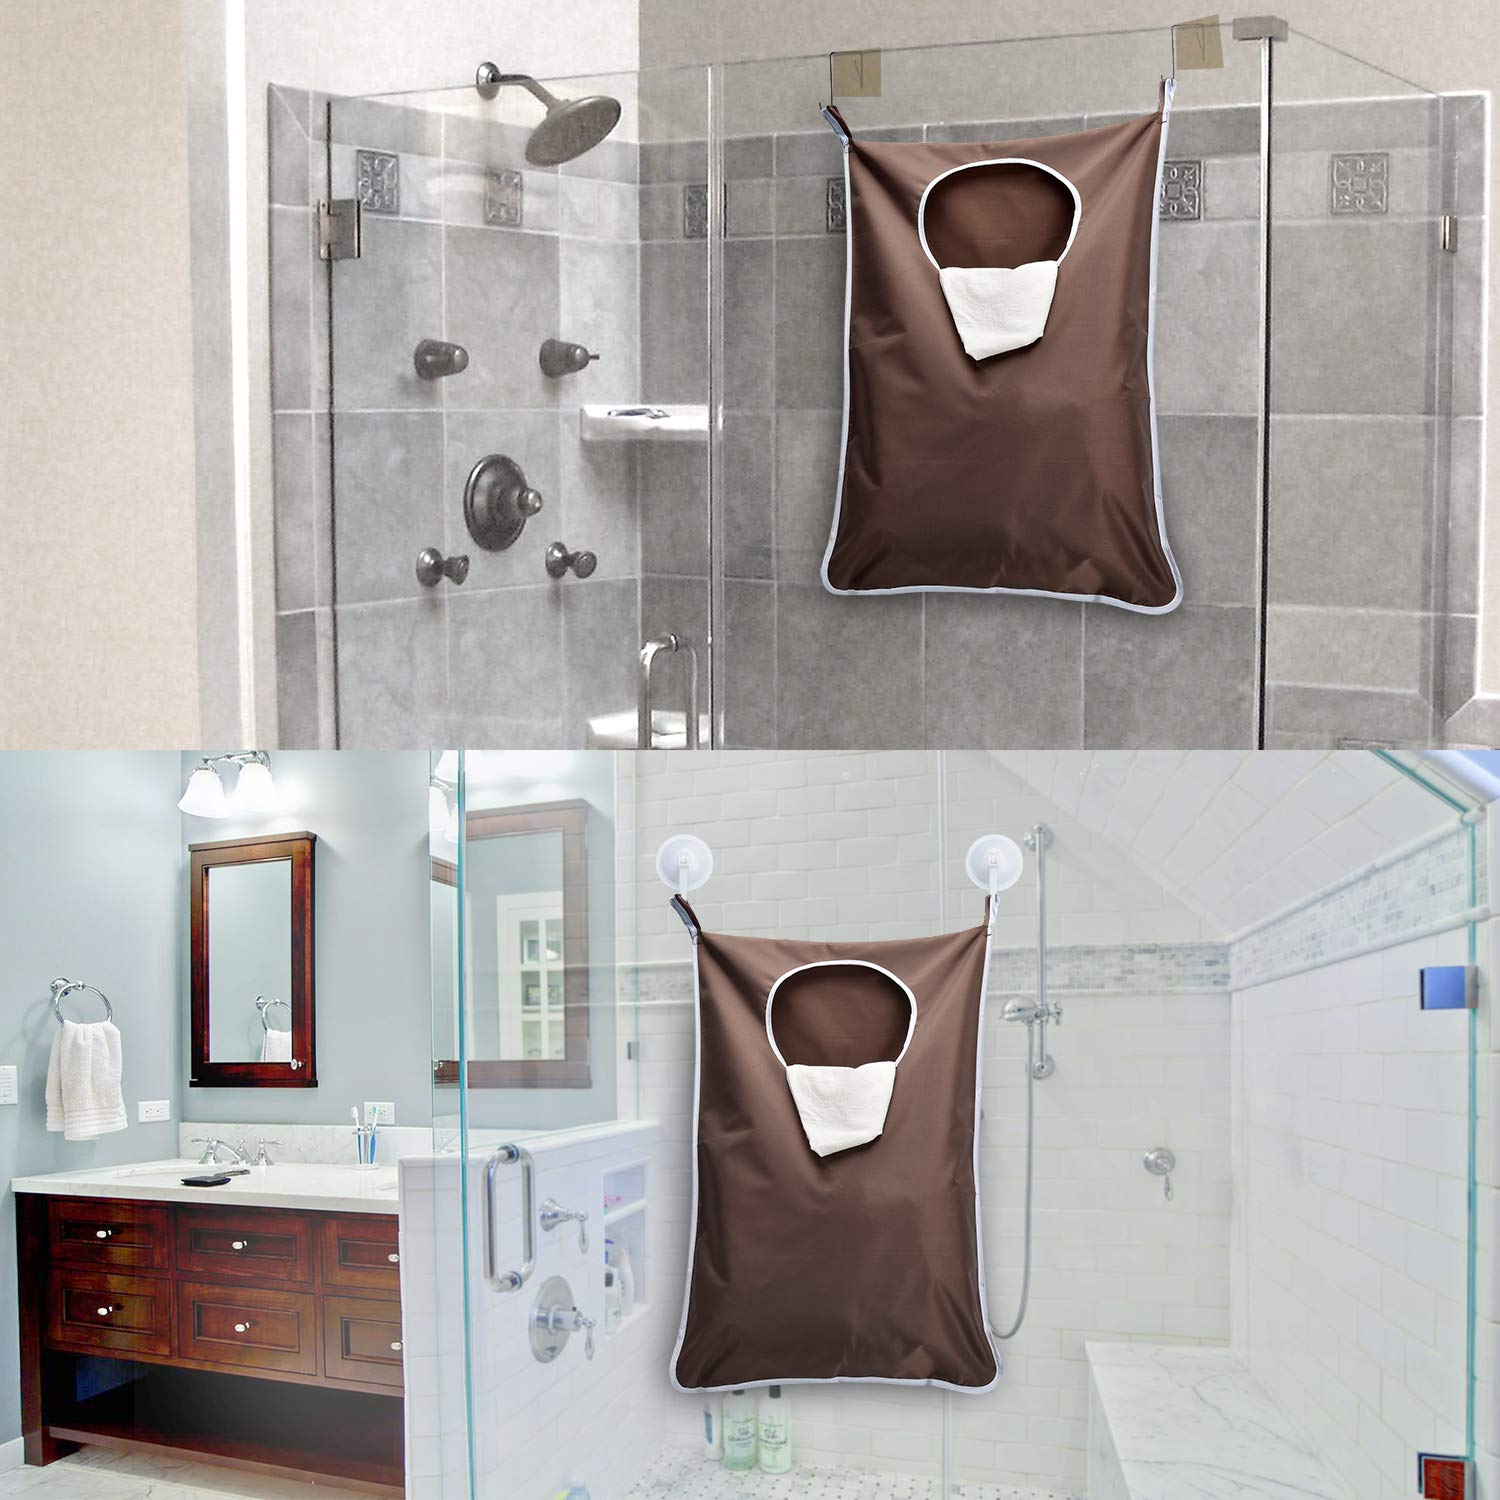 Laundry Hanging Bag, Space Saving Door-Hanging Laundry Hamper Bag and Laundry Mesh Bag for College Dorm, Apartment Dweller - Pack of 2, Large Bag